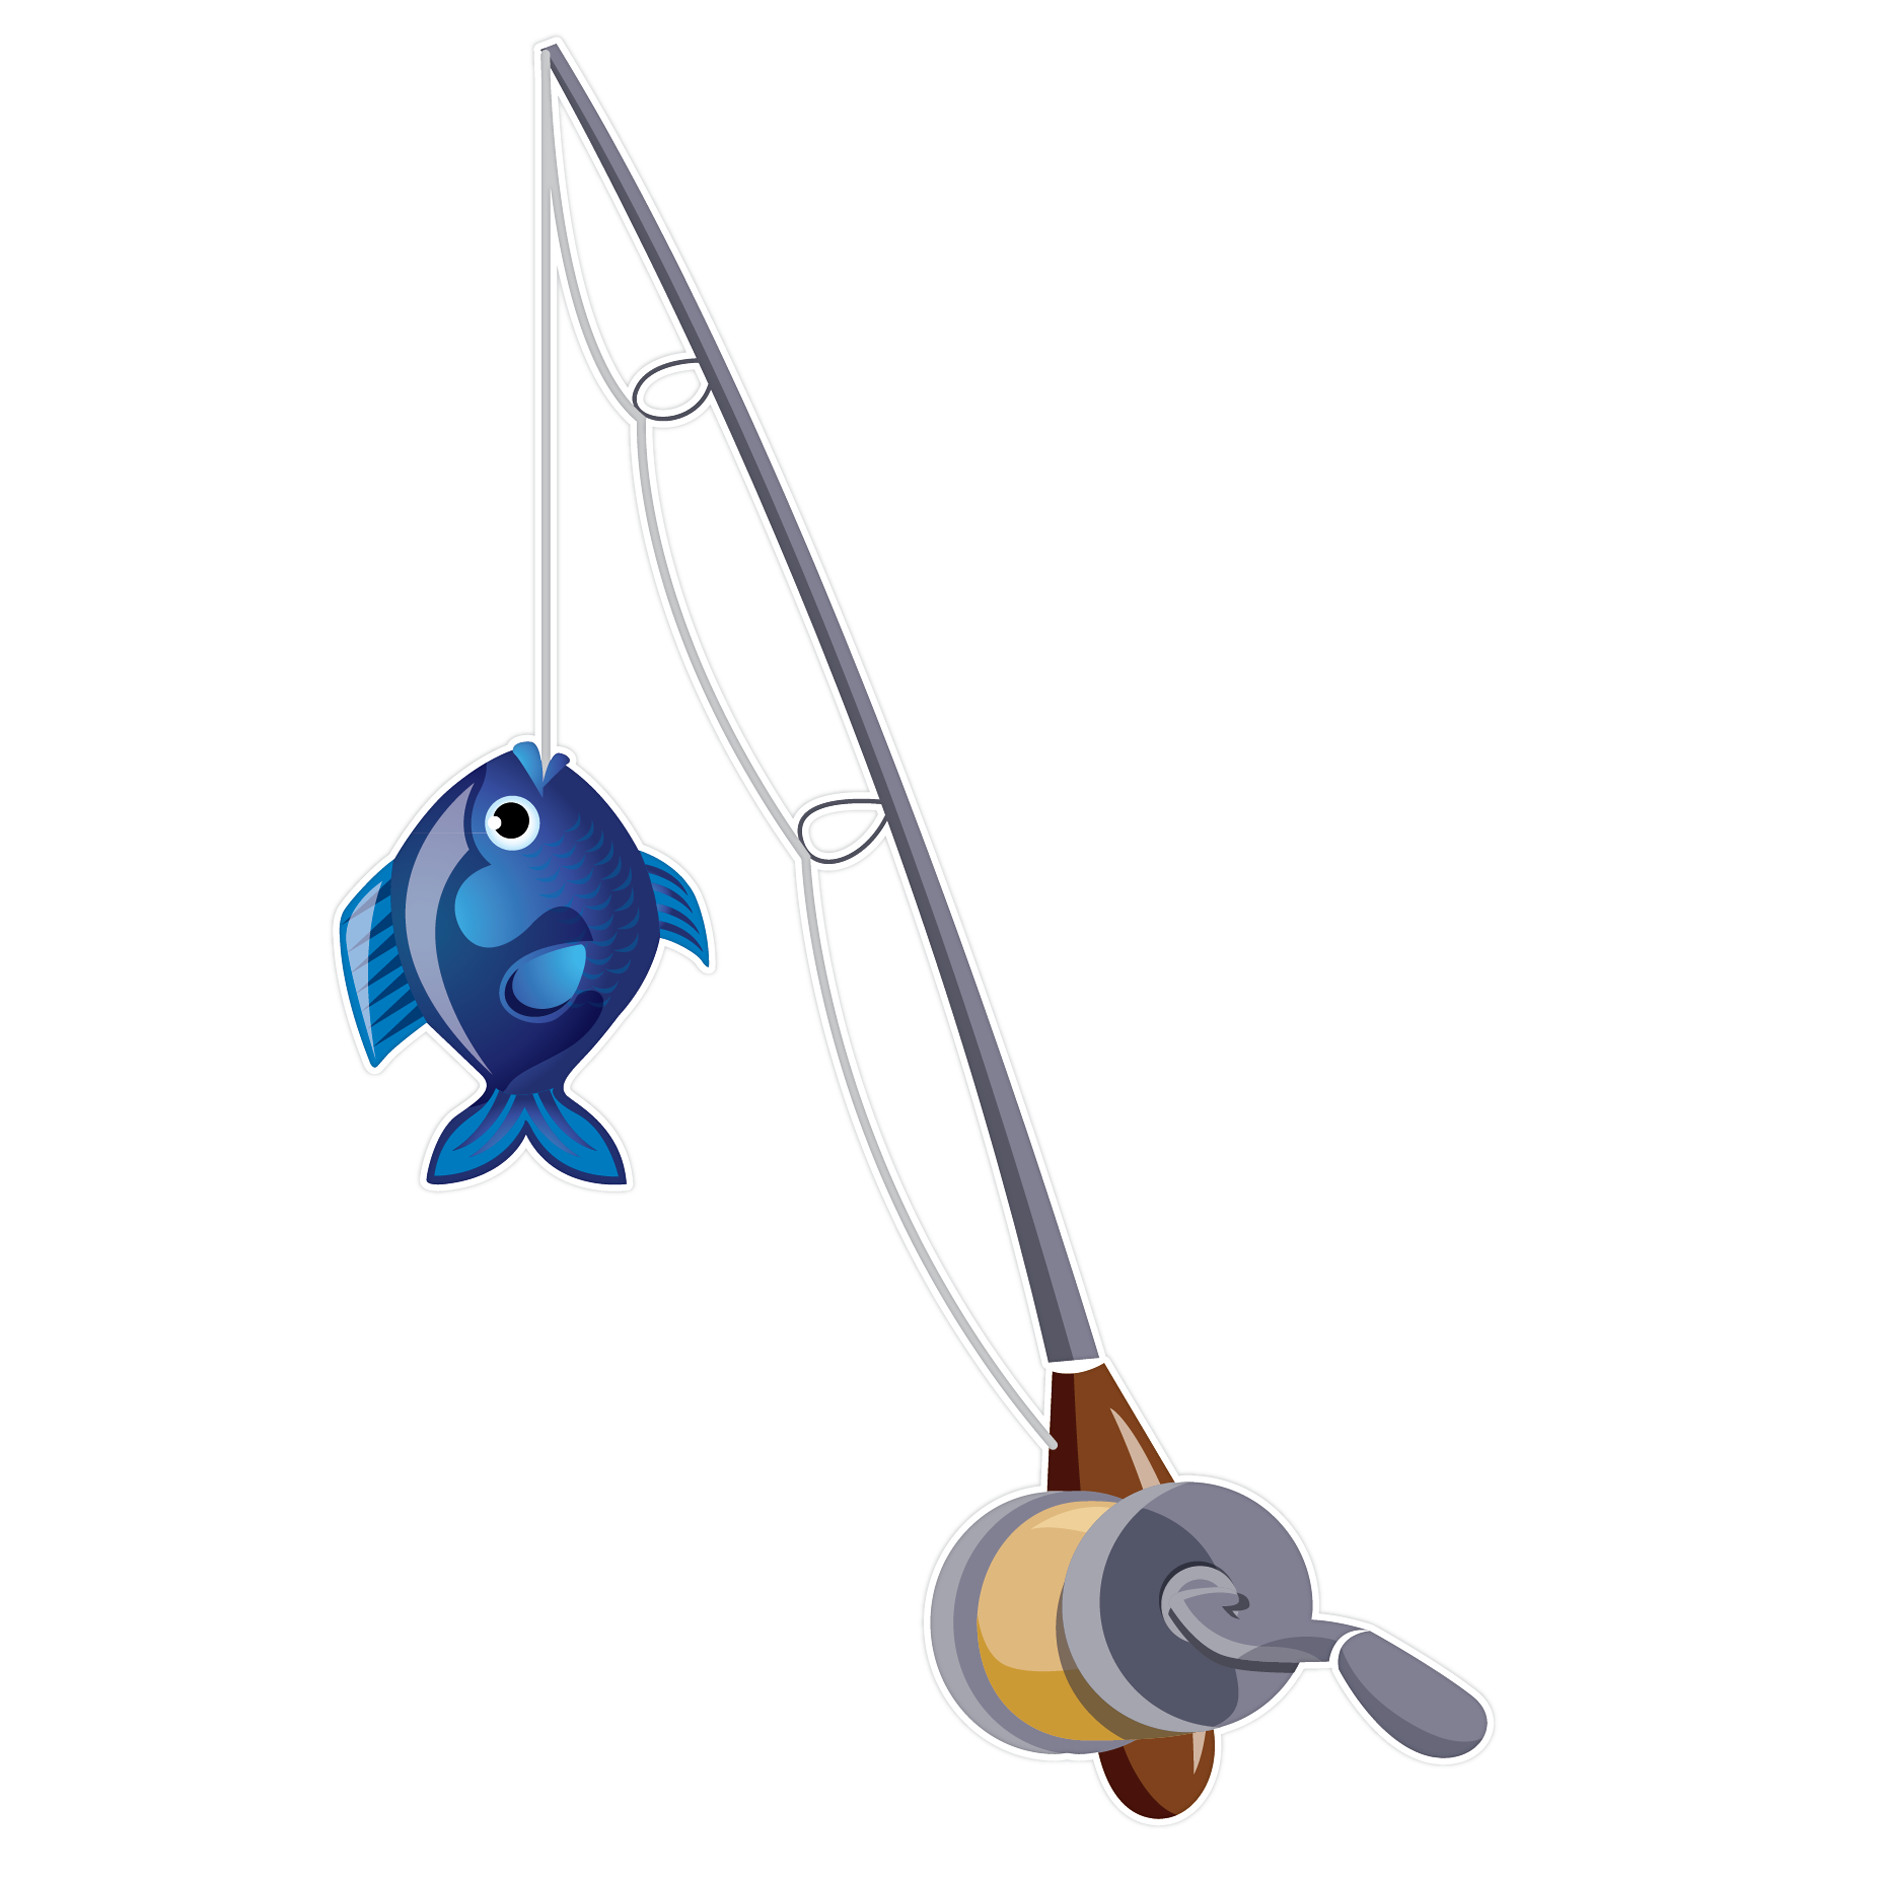 1879x1879 Fishing Pole Clipart Fishing Rod Image 3